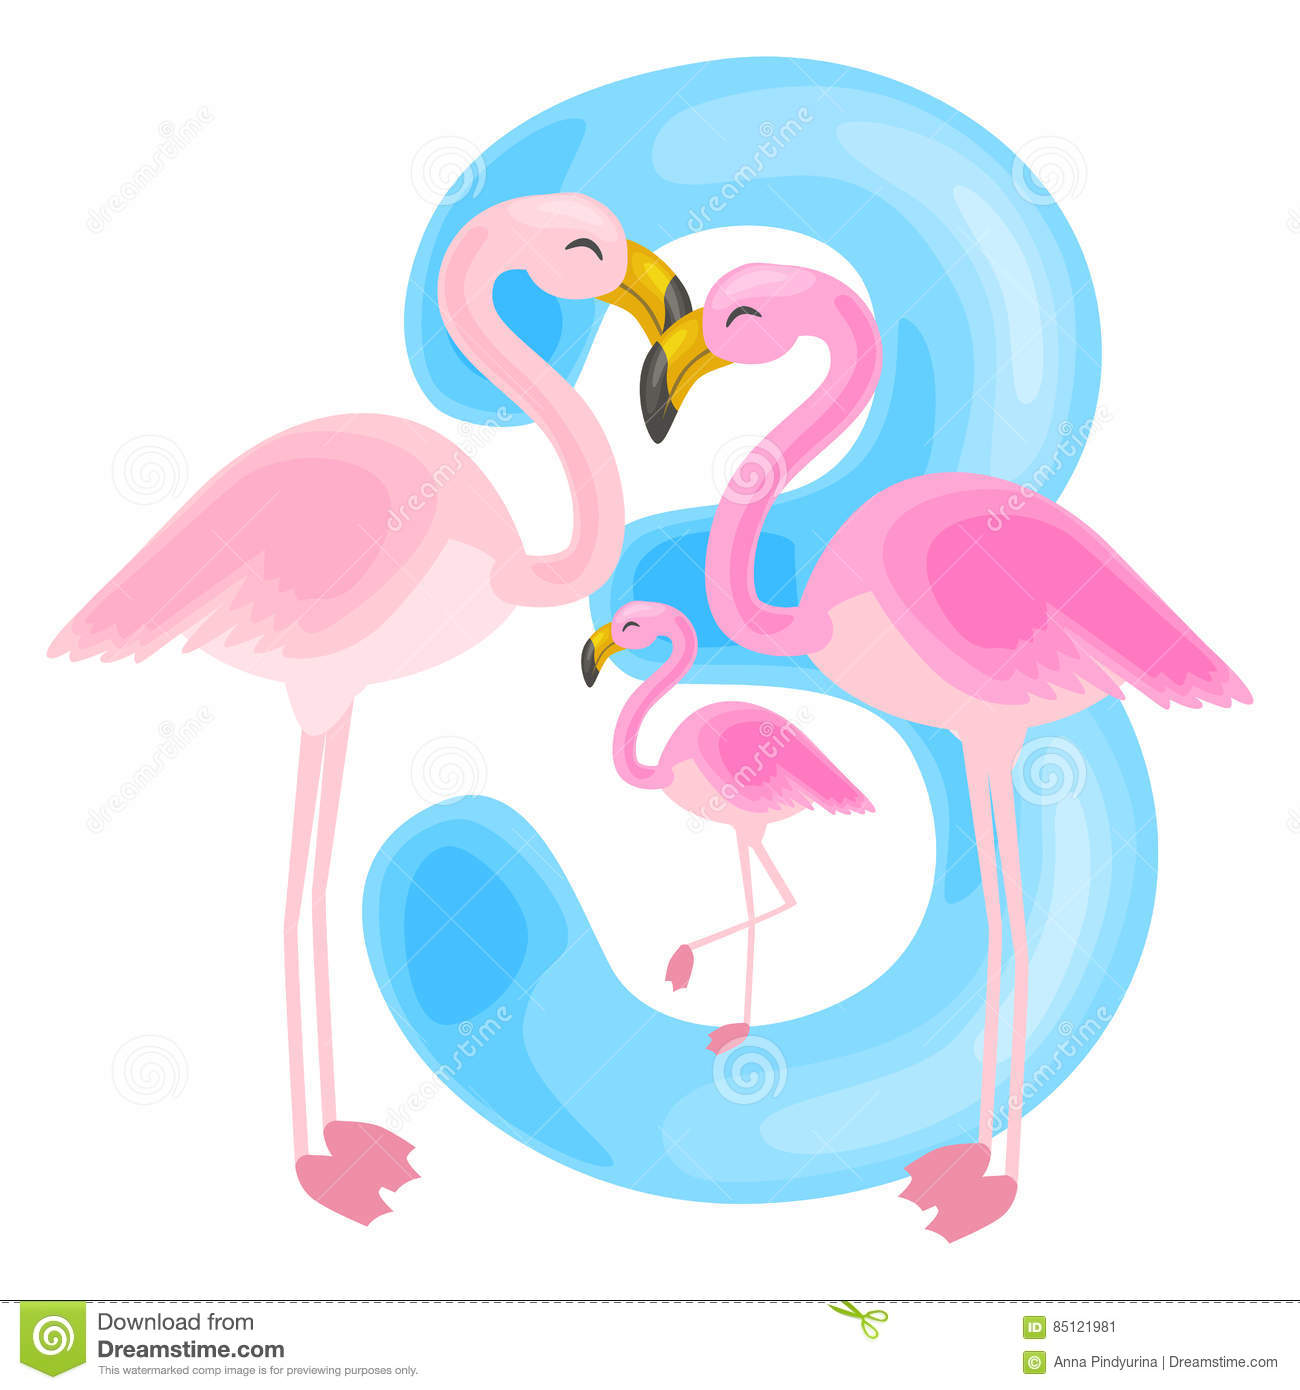 Ordinal Number 3 For Teaching Children Counting Three Flamingos With ...